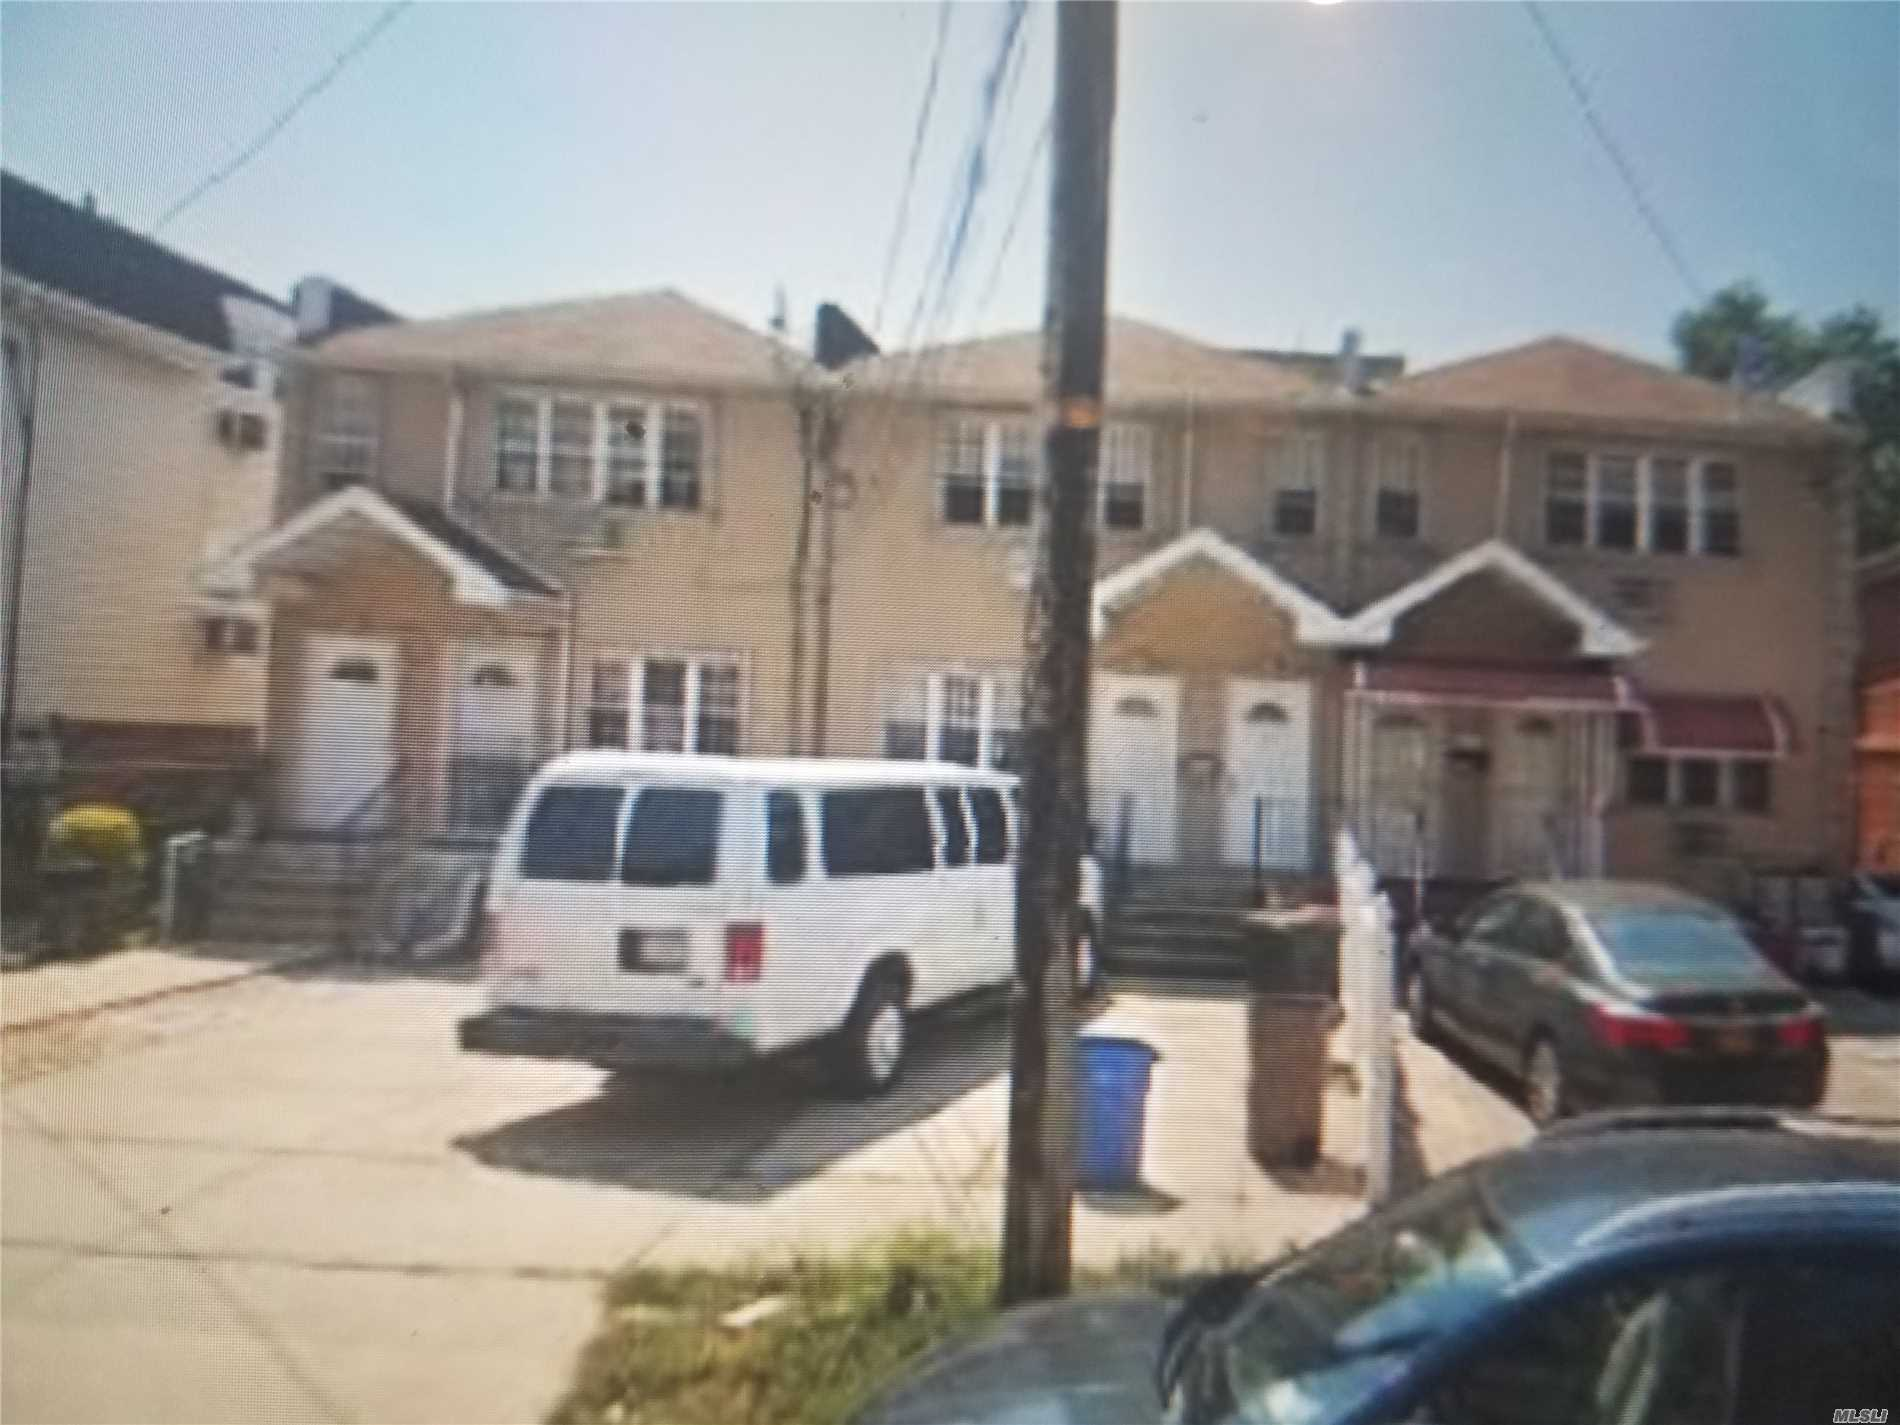 Great 2 Family Investment, Hardwood Floors And Updated. Each Apt Has 2 Bathrooms. Full Finished Basement. Separate Water Heaters And Boilers. Close To Schools, Shopping, Park, Transportation And House Of Worship.